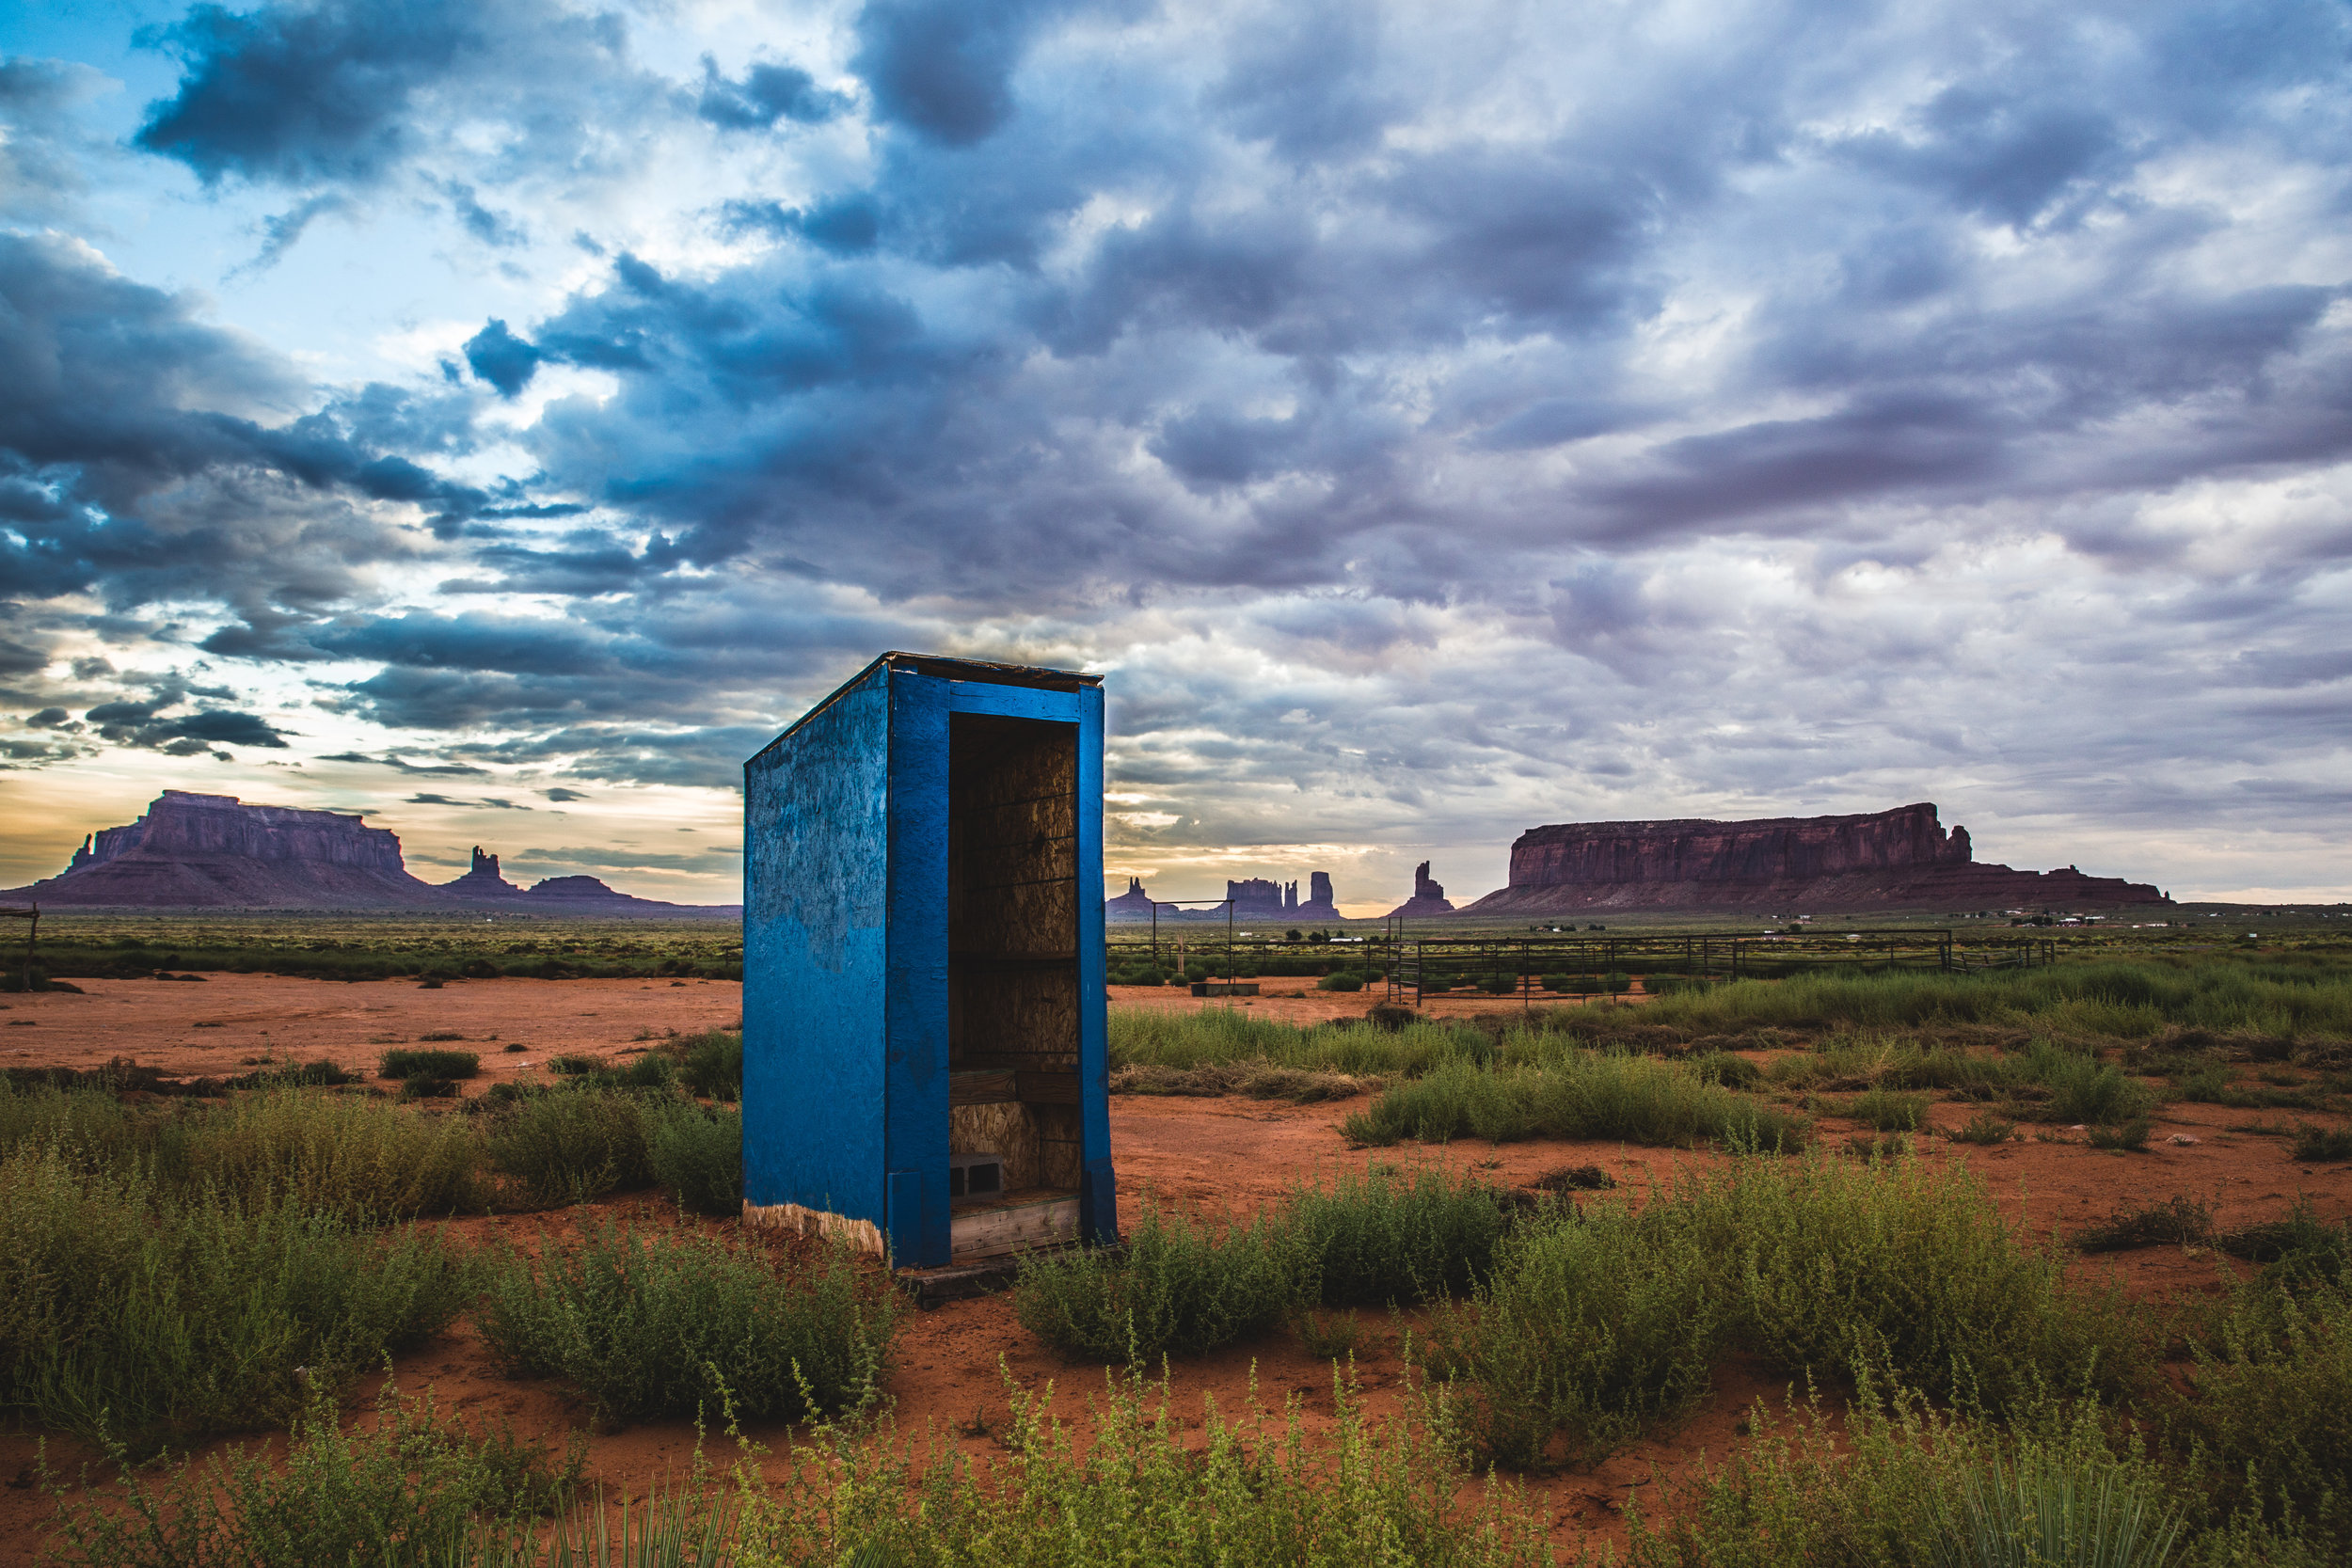 Just outside of Monument Valley. This toilet was spicy, it had no door, which was actually kind of nice, but the craftsmanship left something to be desired…also...no toilet paper. RATING: ★★☆☆☆